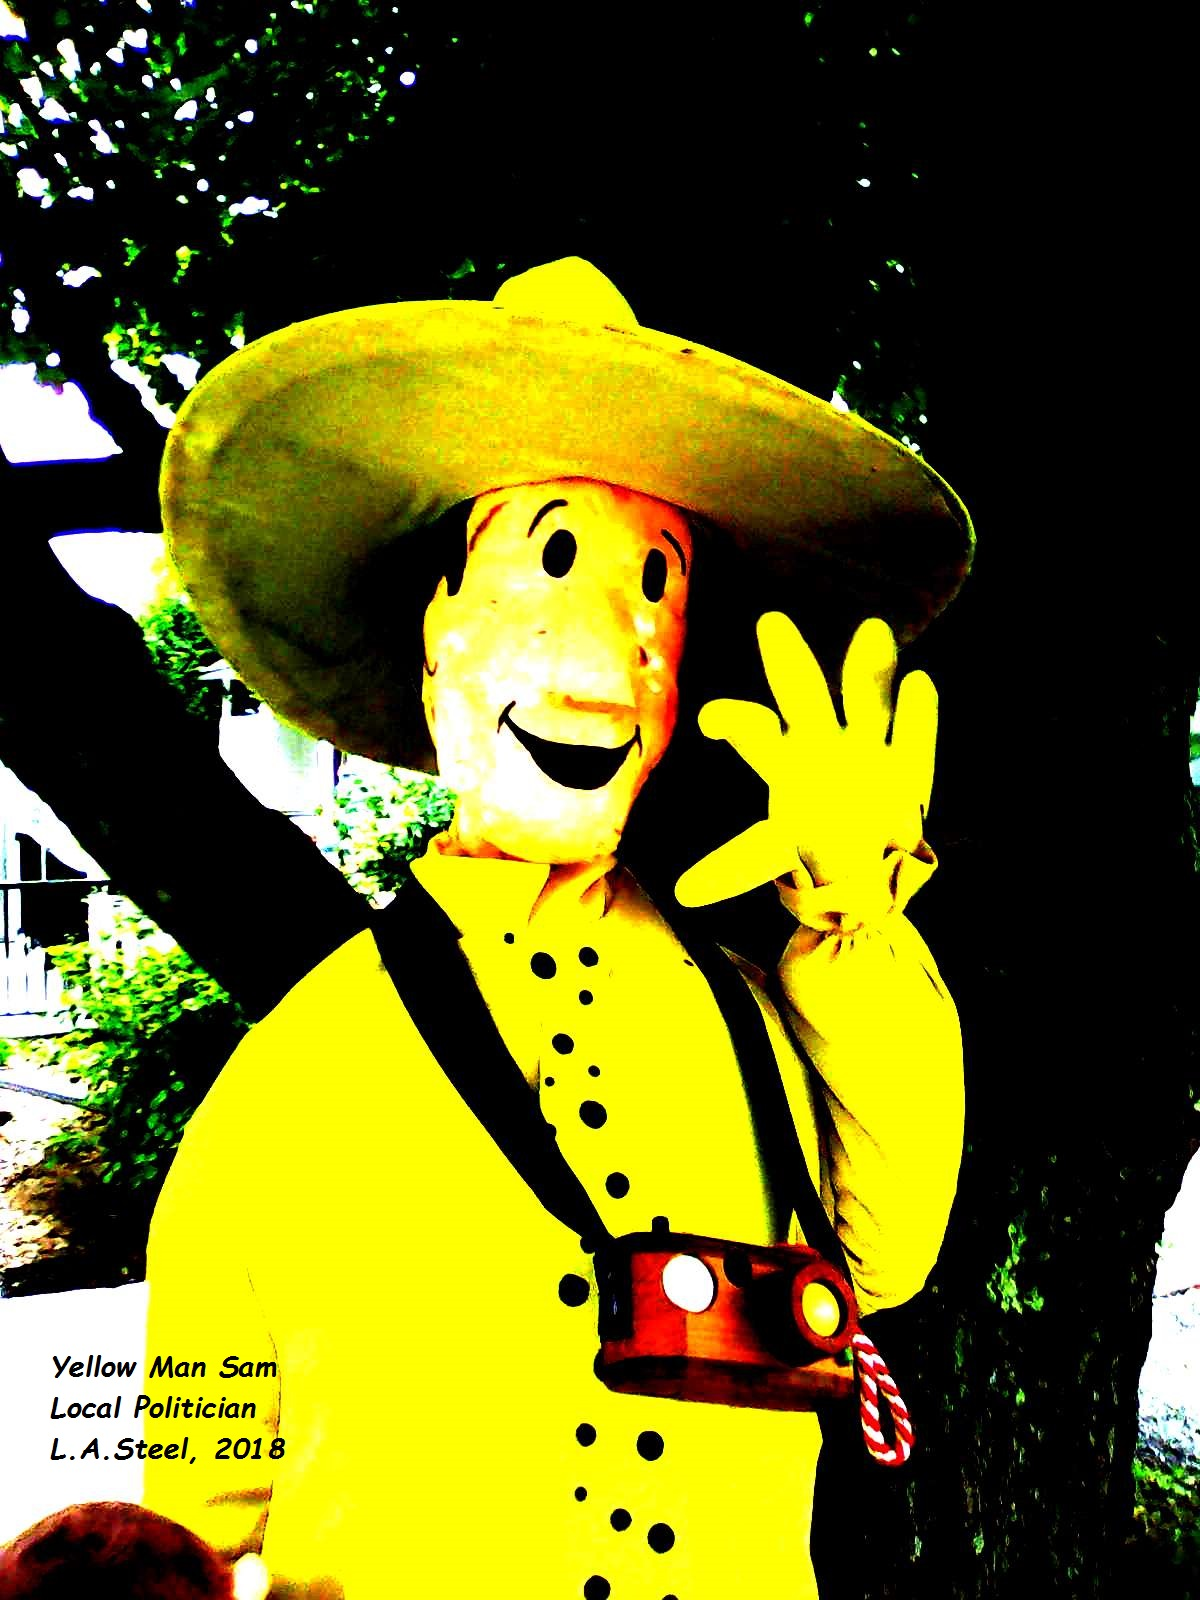 yellow man sam local politician 3 2018